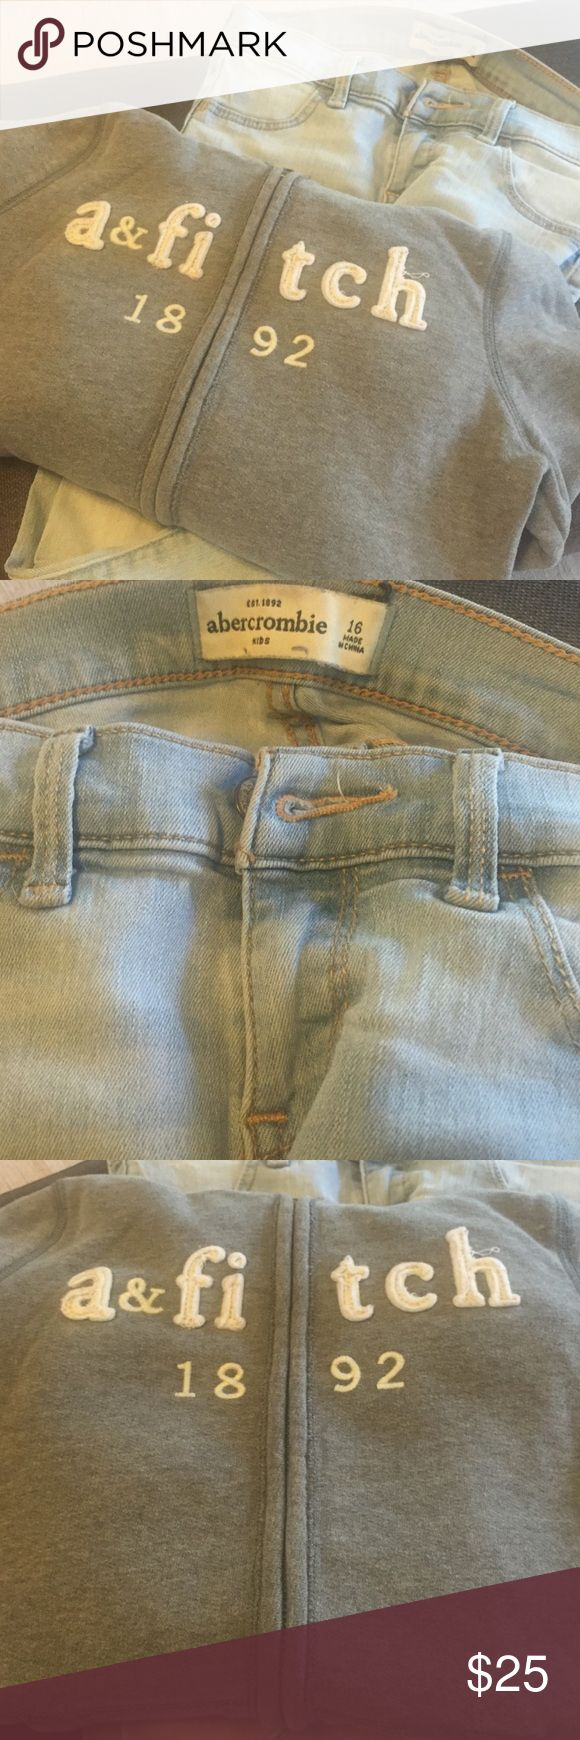 Abercrombie Kids outfit Good condition 16 slim light jeans and Gray sweatshirt. abercrombie kids Matching Sets